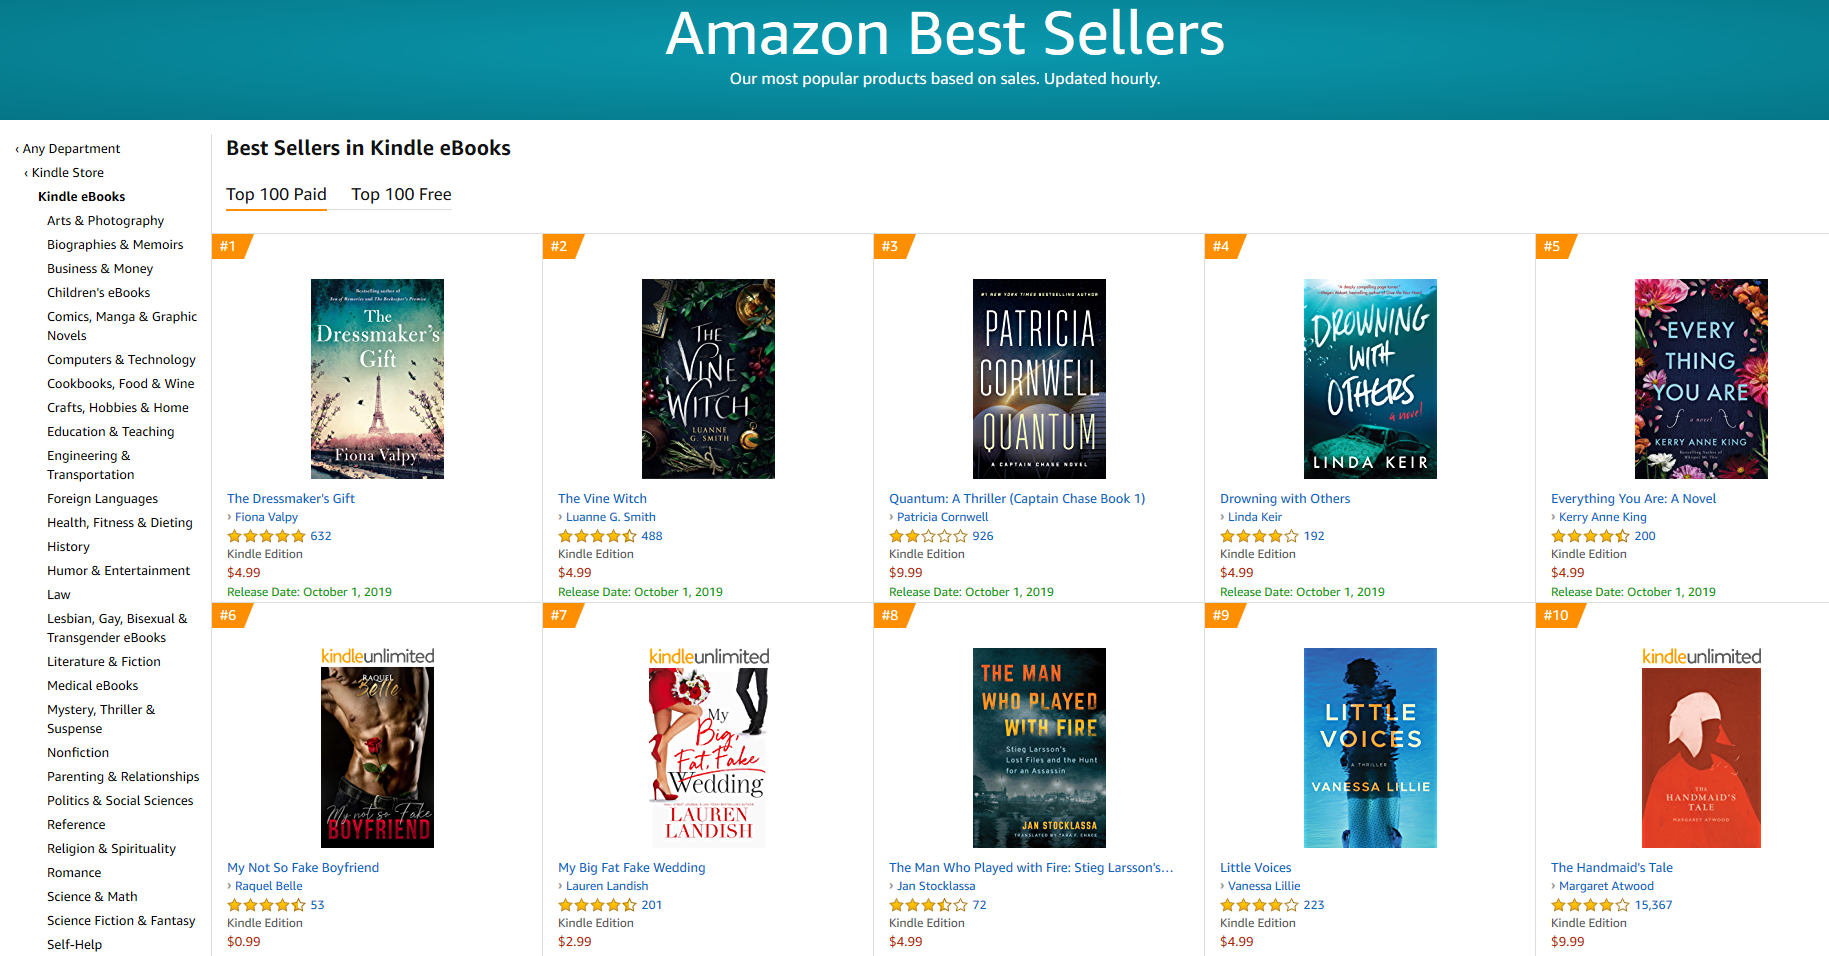 amazon best sellers in kindle ebooks